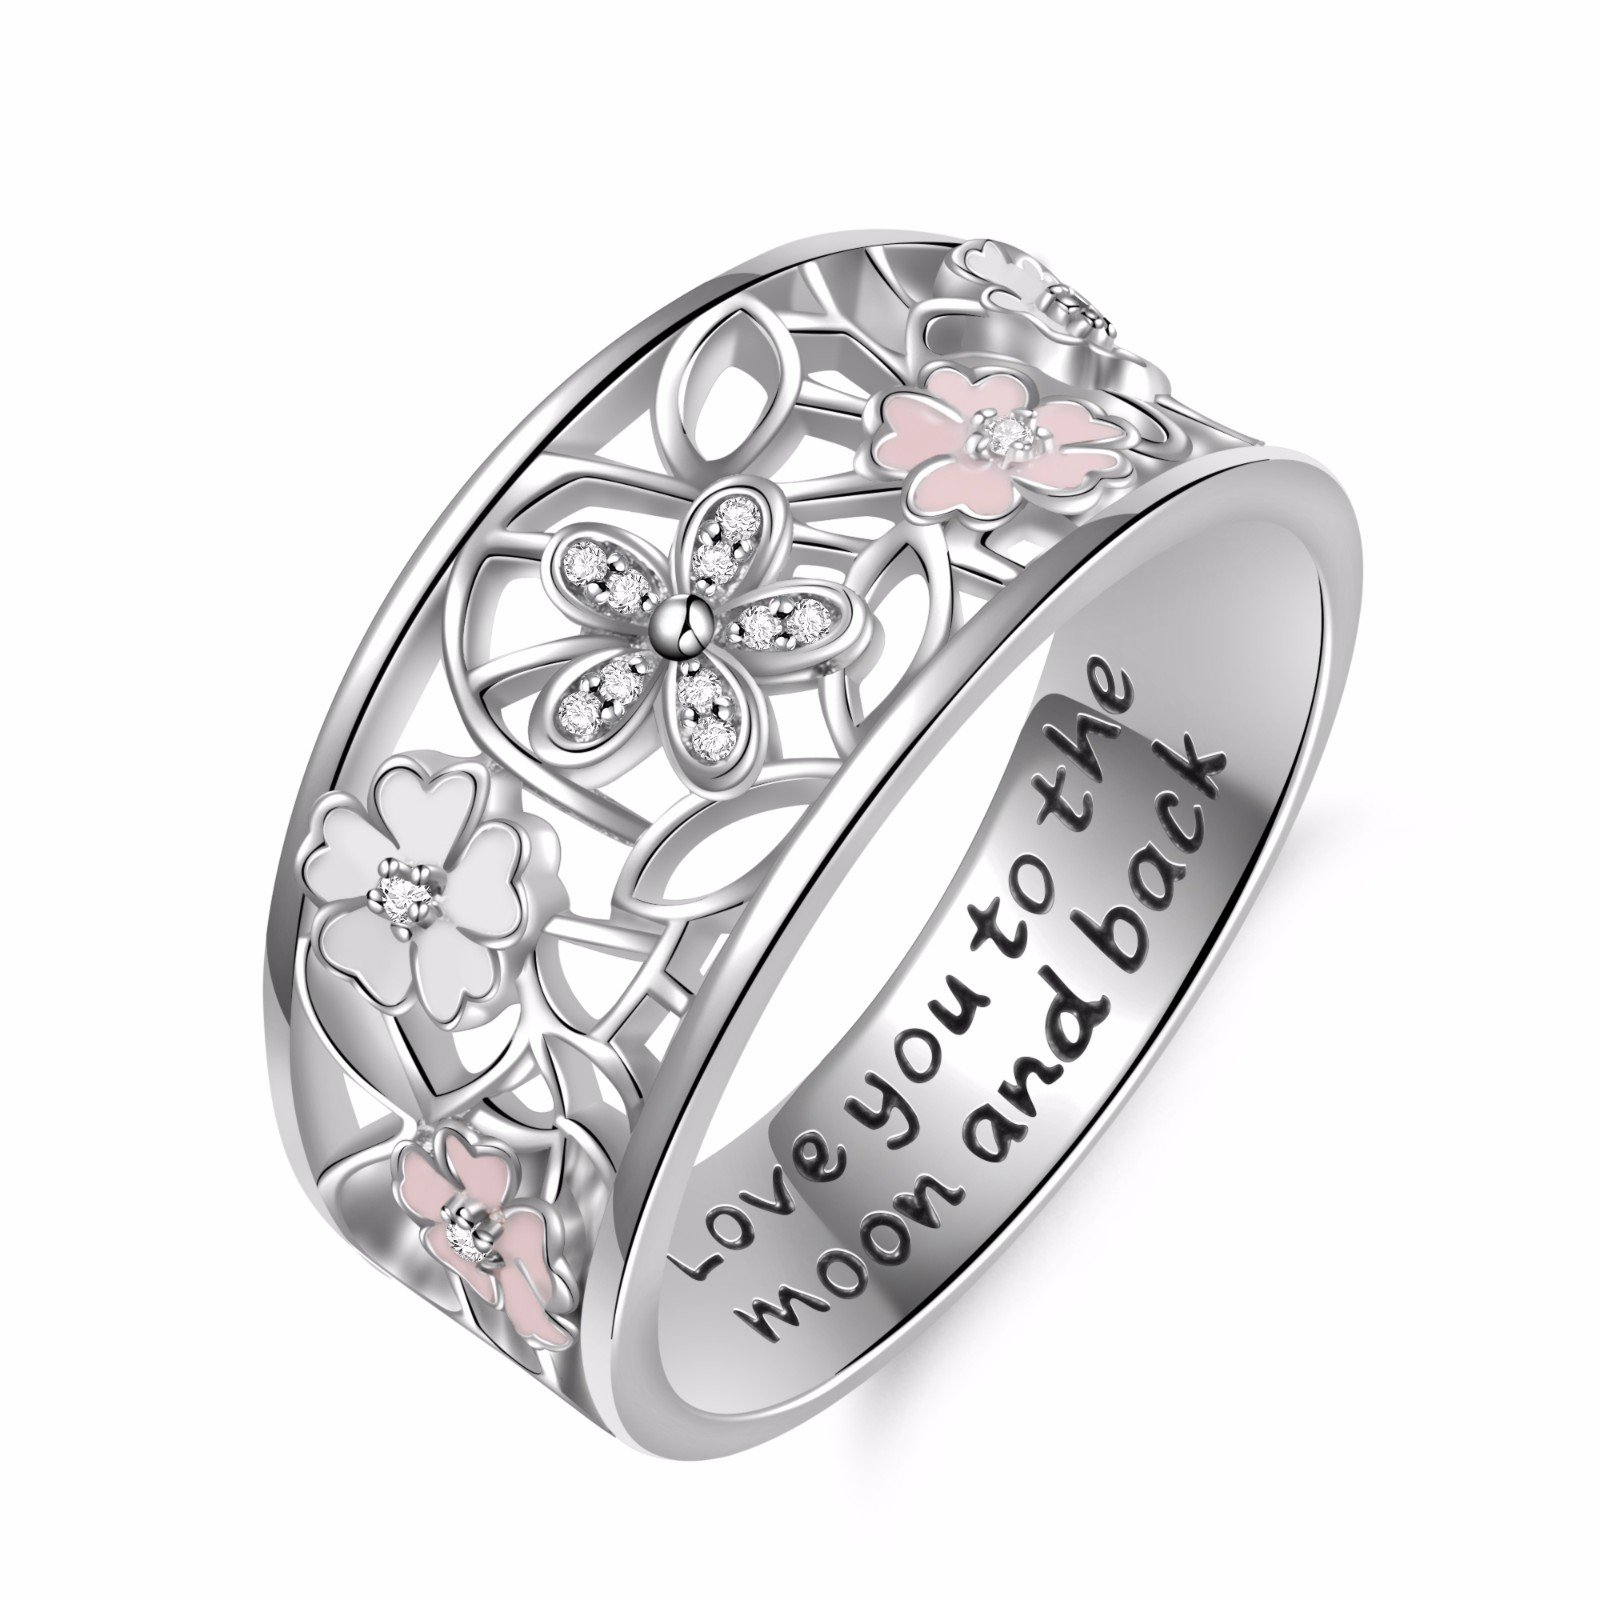 Angemiel 925 Sterling Silver Cubic Zirconia Flower Promise Ring For Women Jewelry Family Friend Love